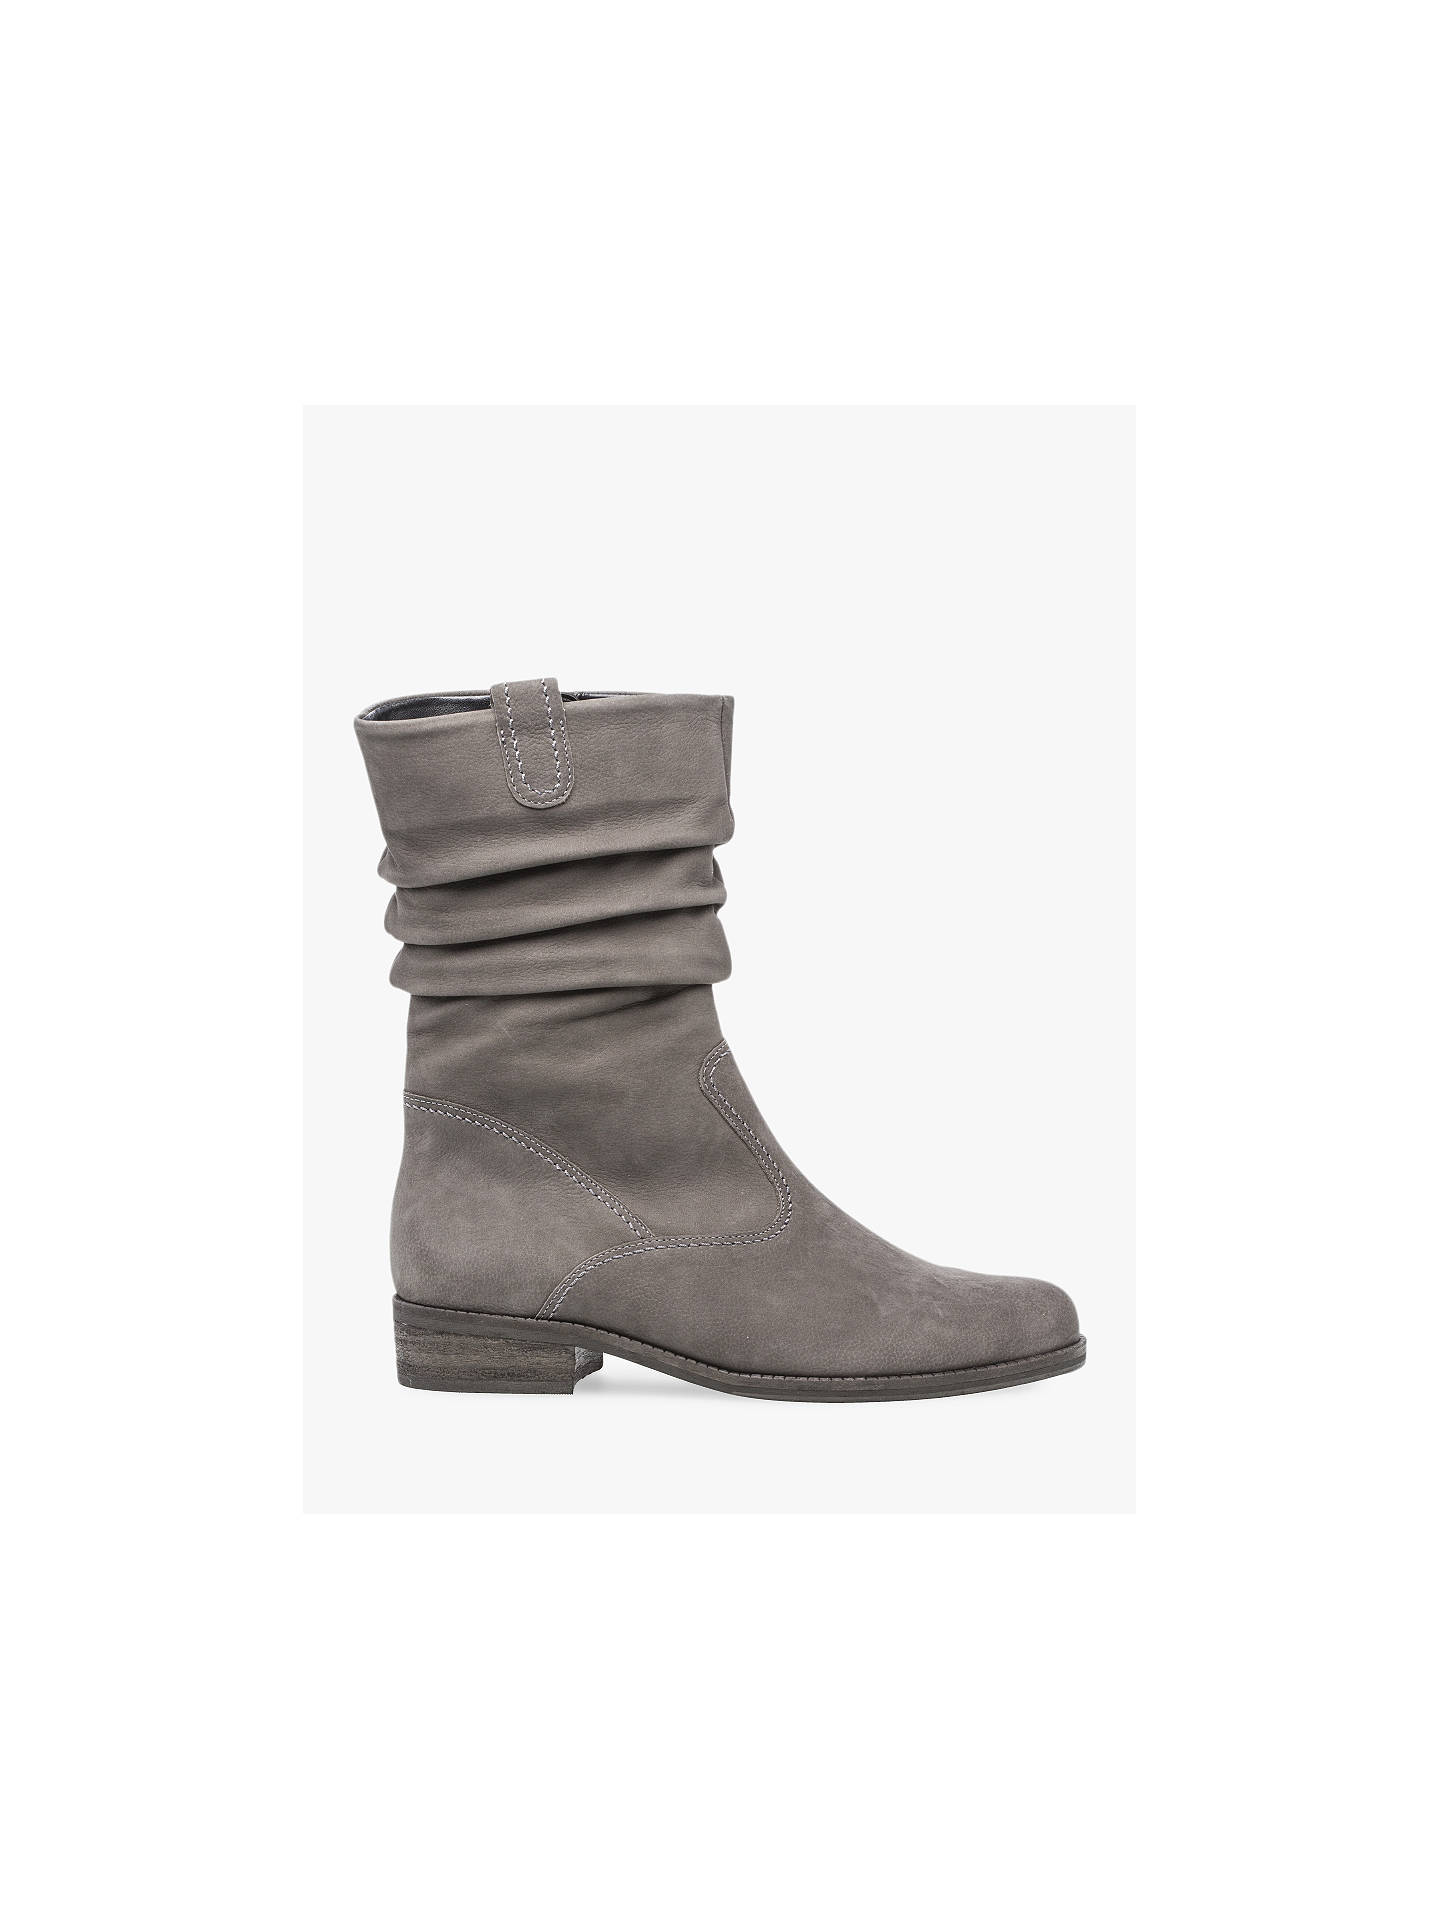 e862606fc Buy Gabor Trafalgar Nubuck Ruched Calf Boots, Anthracite, 4 Online at  johnlewis.com ...